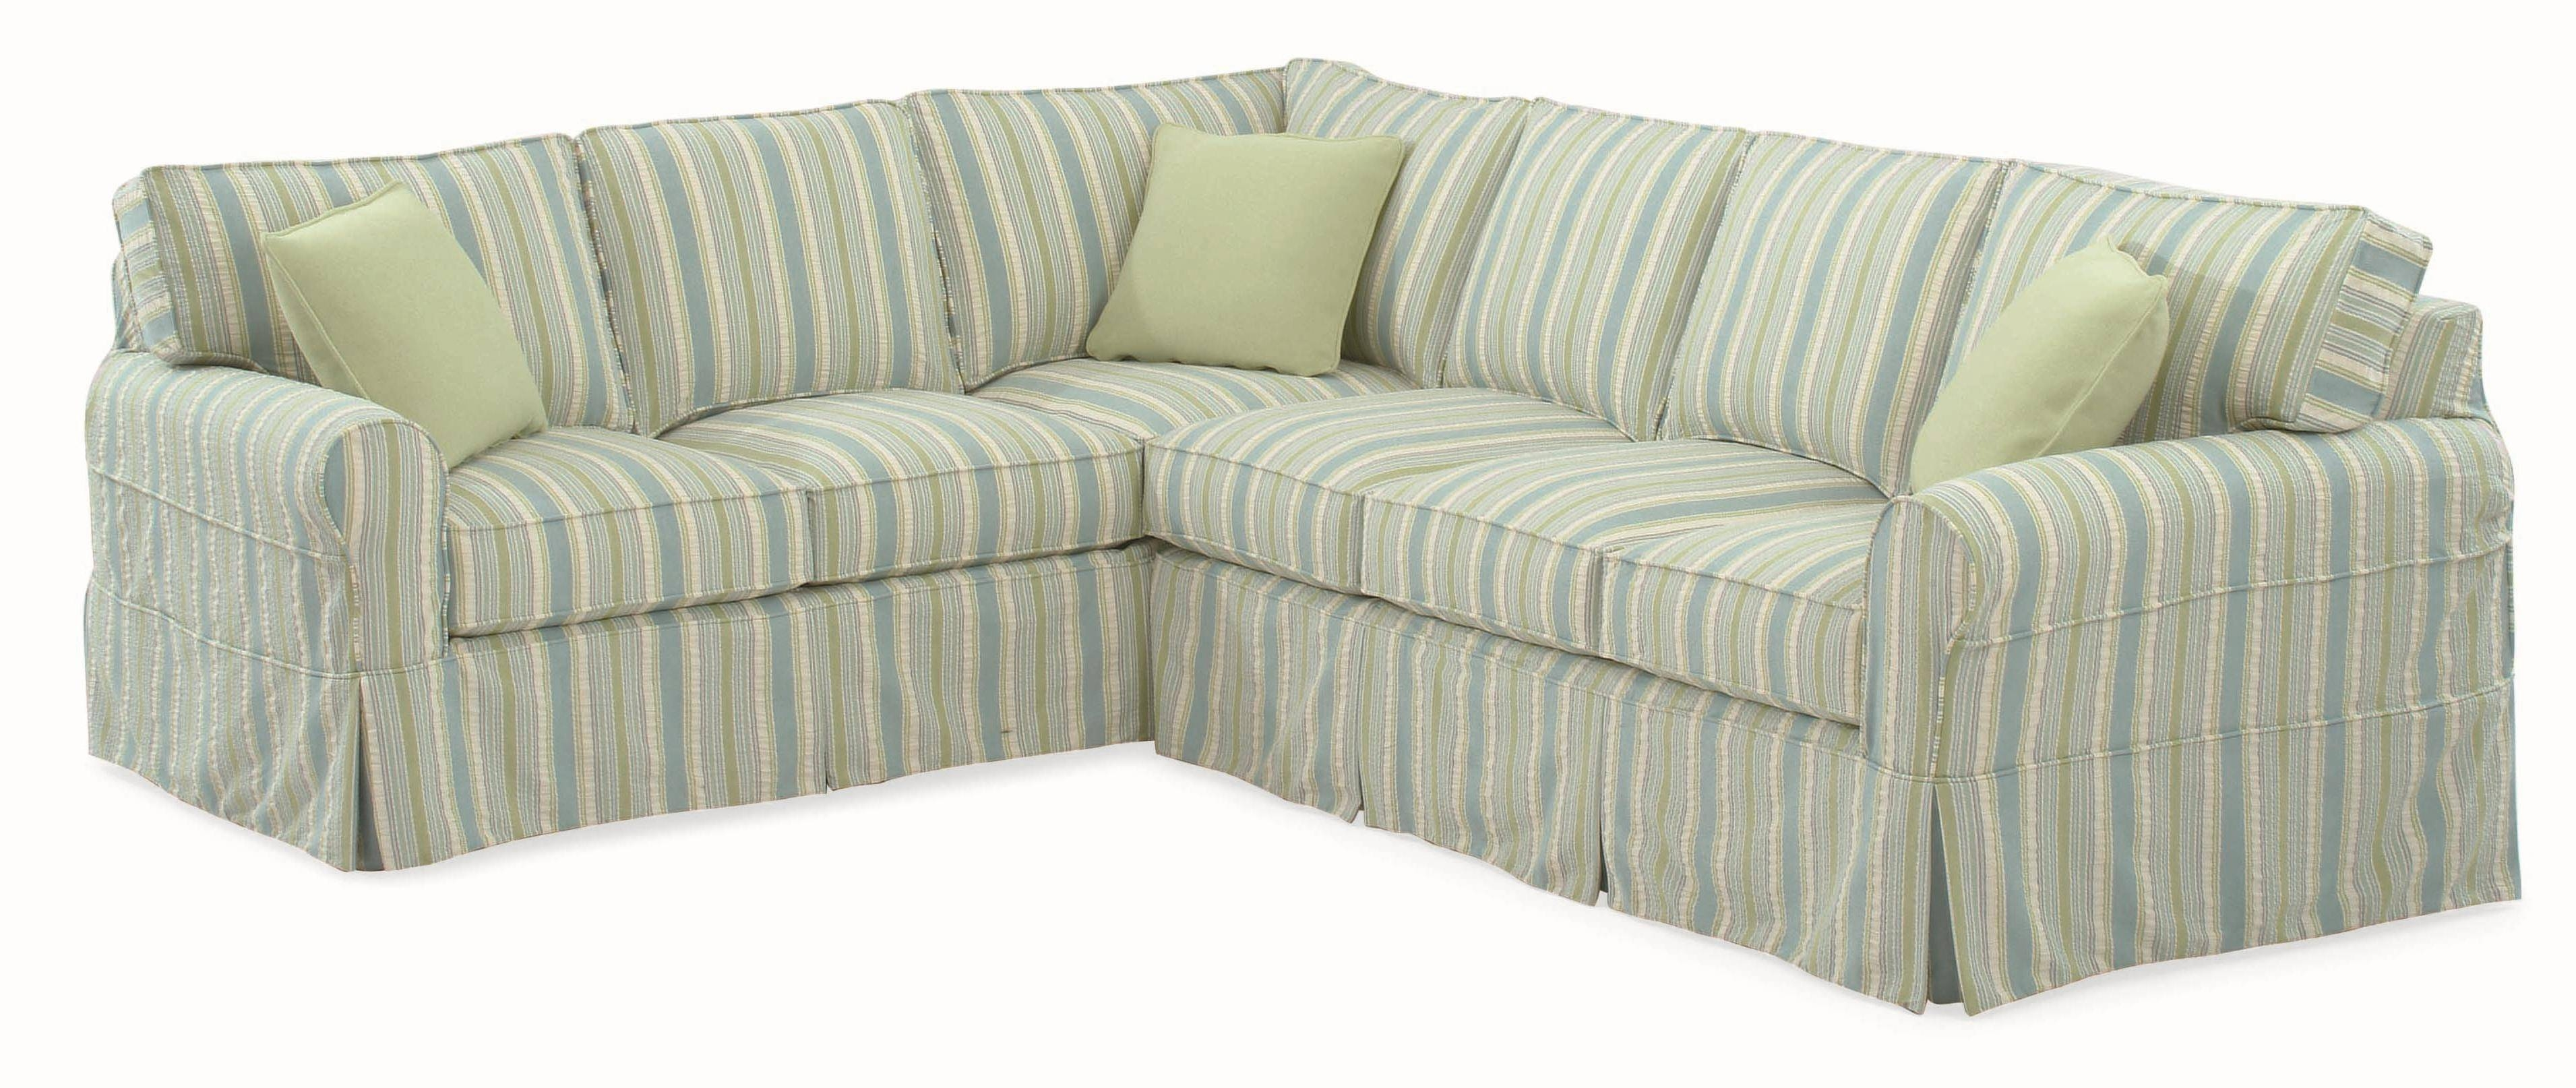 Furniture: Havertys Furniture Sectionals | Ashley Furniture with Clearance Sofa Covers (Image 6 of 30)